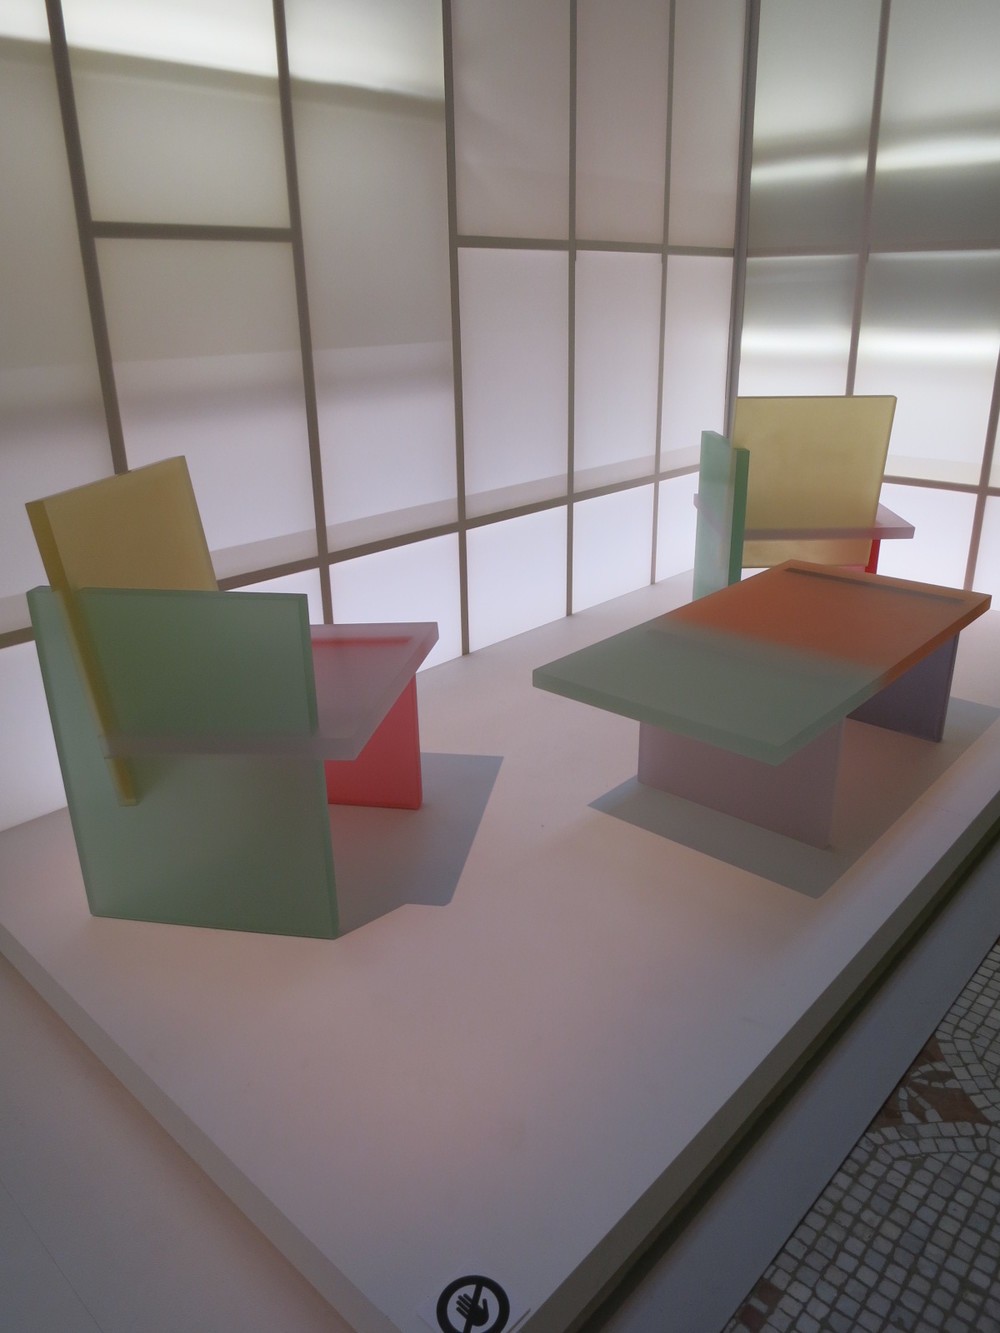 Musee des Art Decoratifs, Paris. 'Korea Now' exhibition 2015. The resin chairs and table designed by Park Won-min